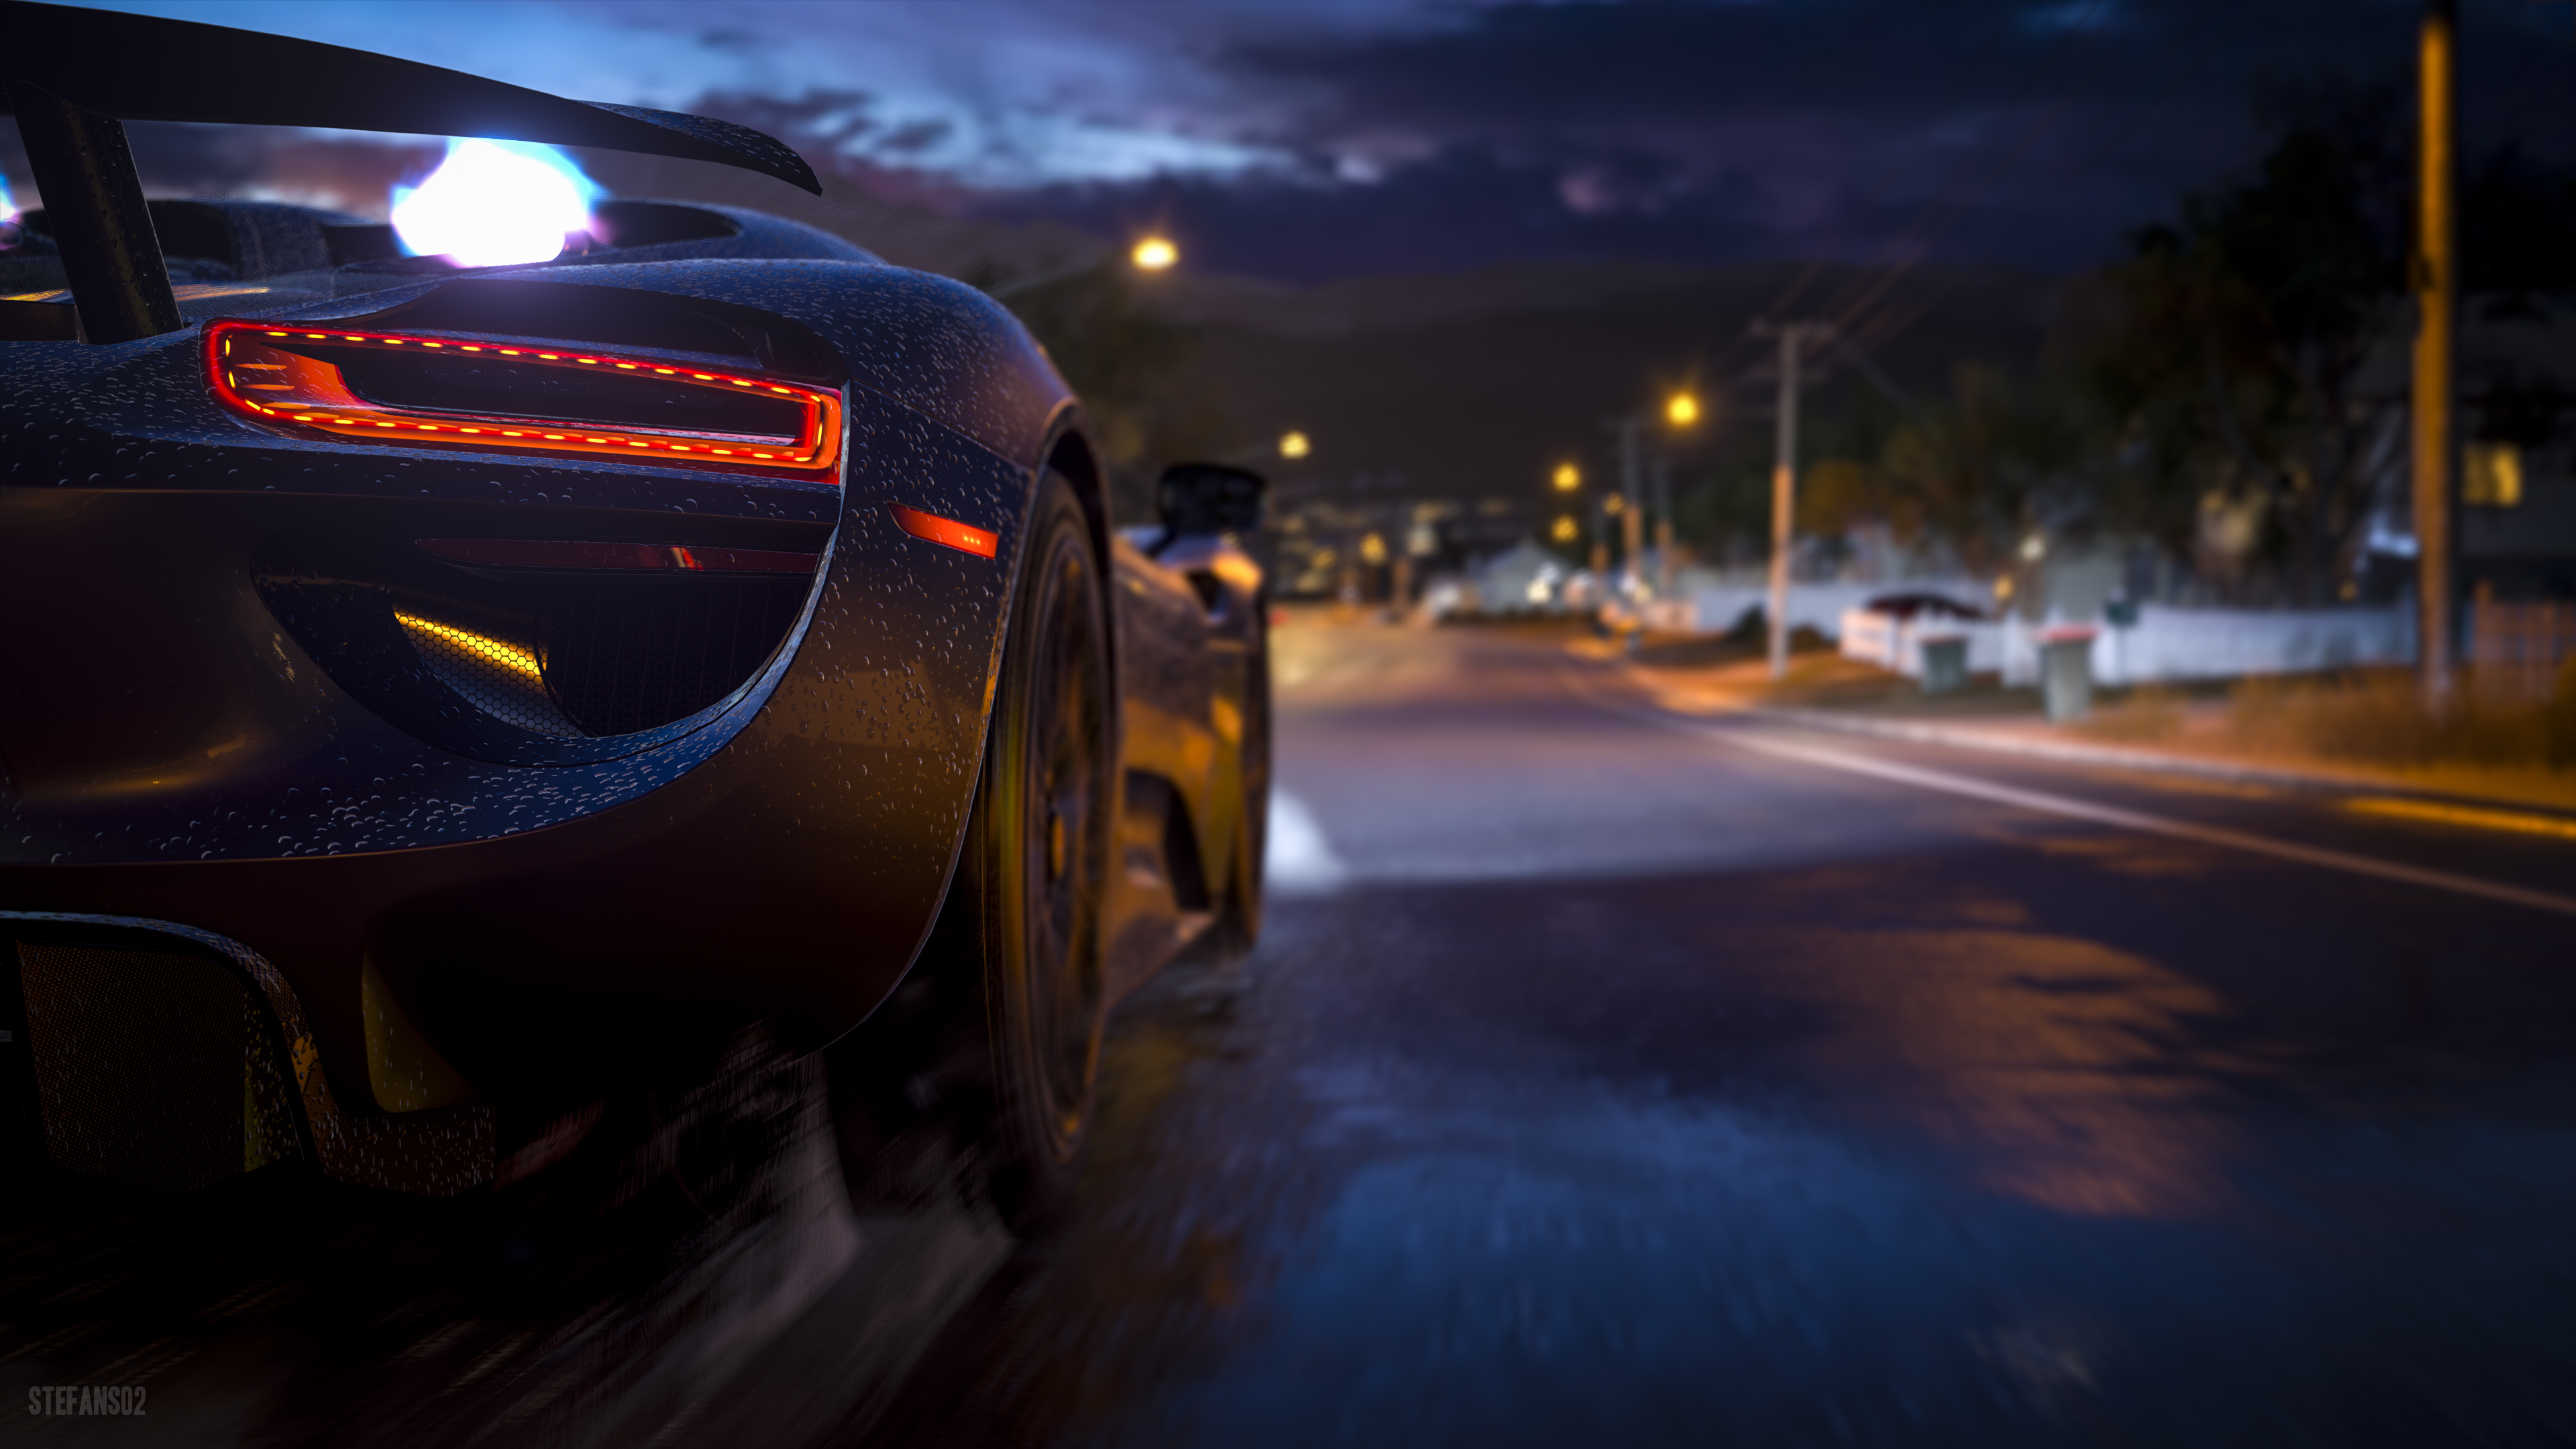 Cool Sport Cars Wallpaper For Mobile 134 Forza Horizon 3 Hd Wallpapers Background Images